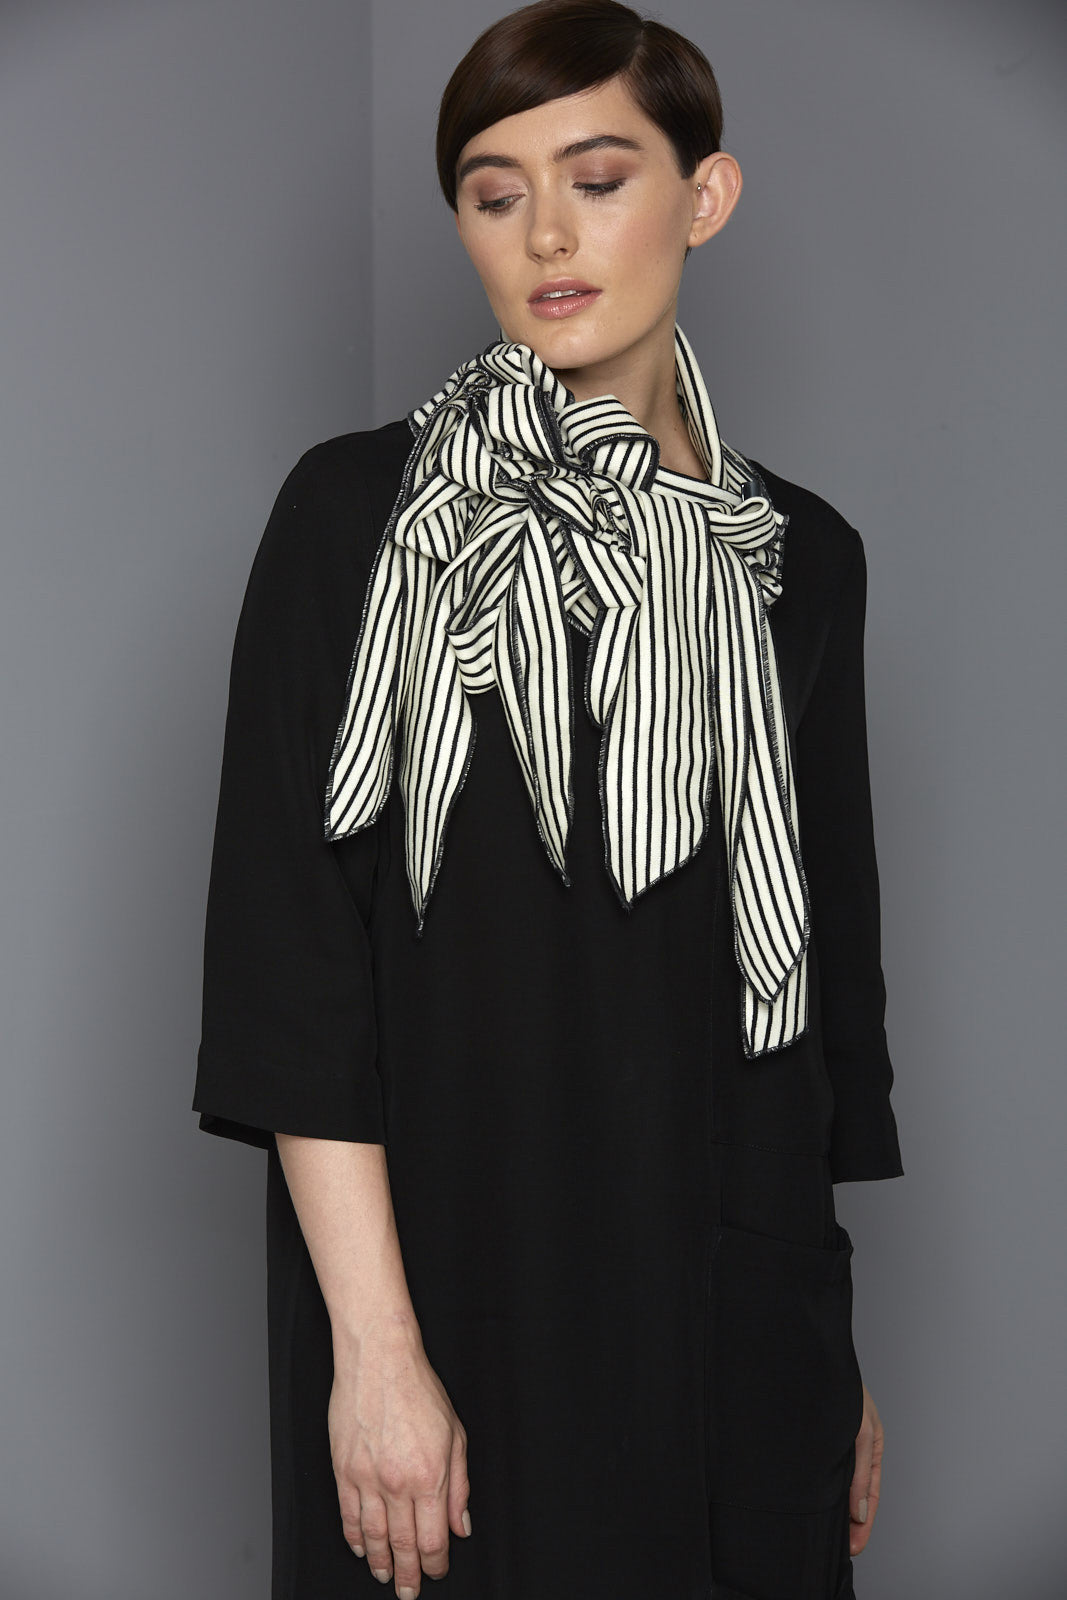 francoise rew clothing best selling scarf